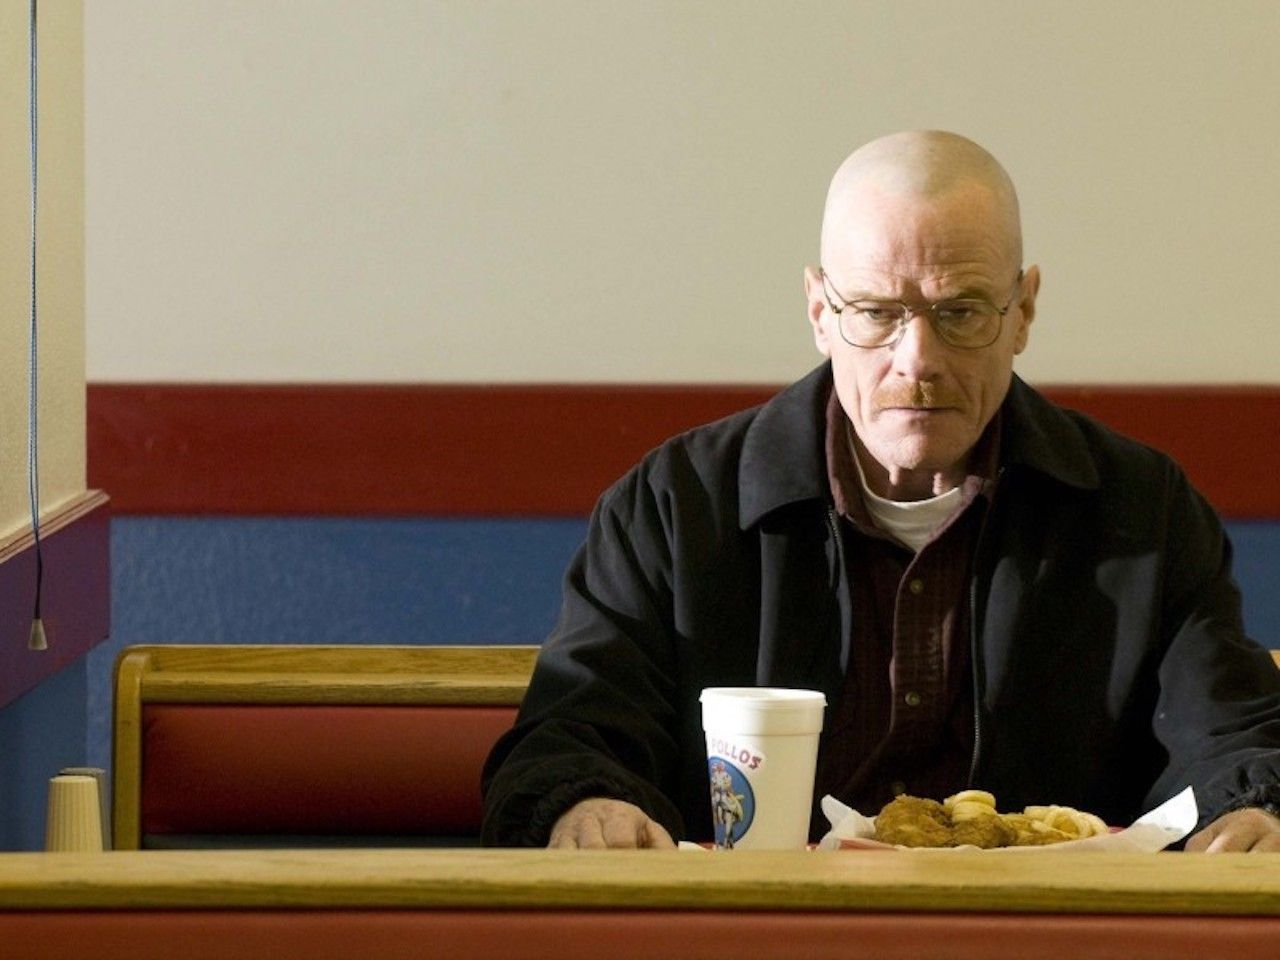 Walter White inside of Los Pollos Hermanos, which is actually Twisters in New Mexico